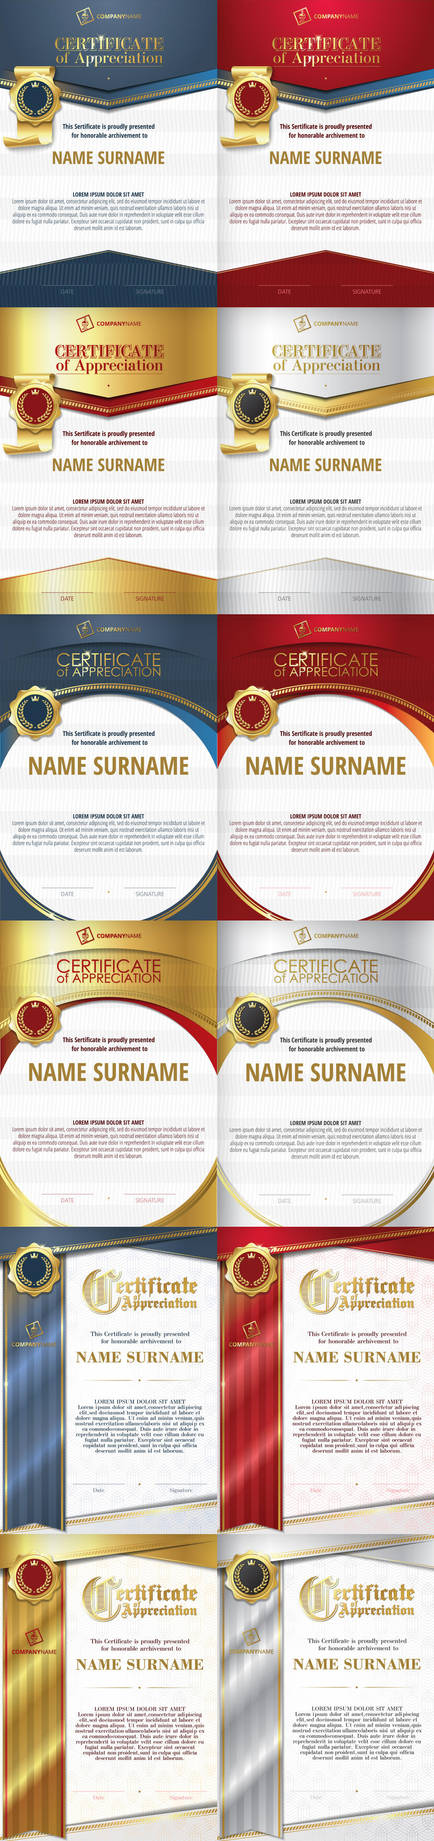 Templates of Certificate of Appreciation. Vector. by Inshader